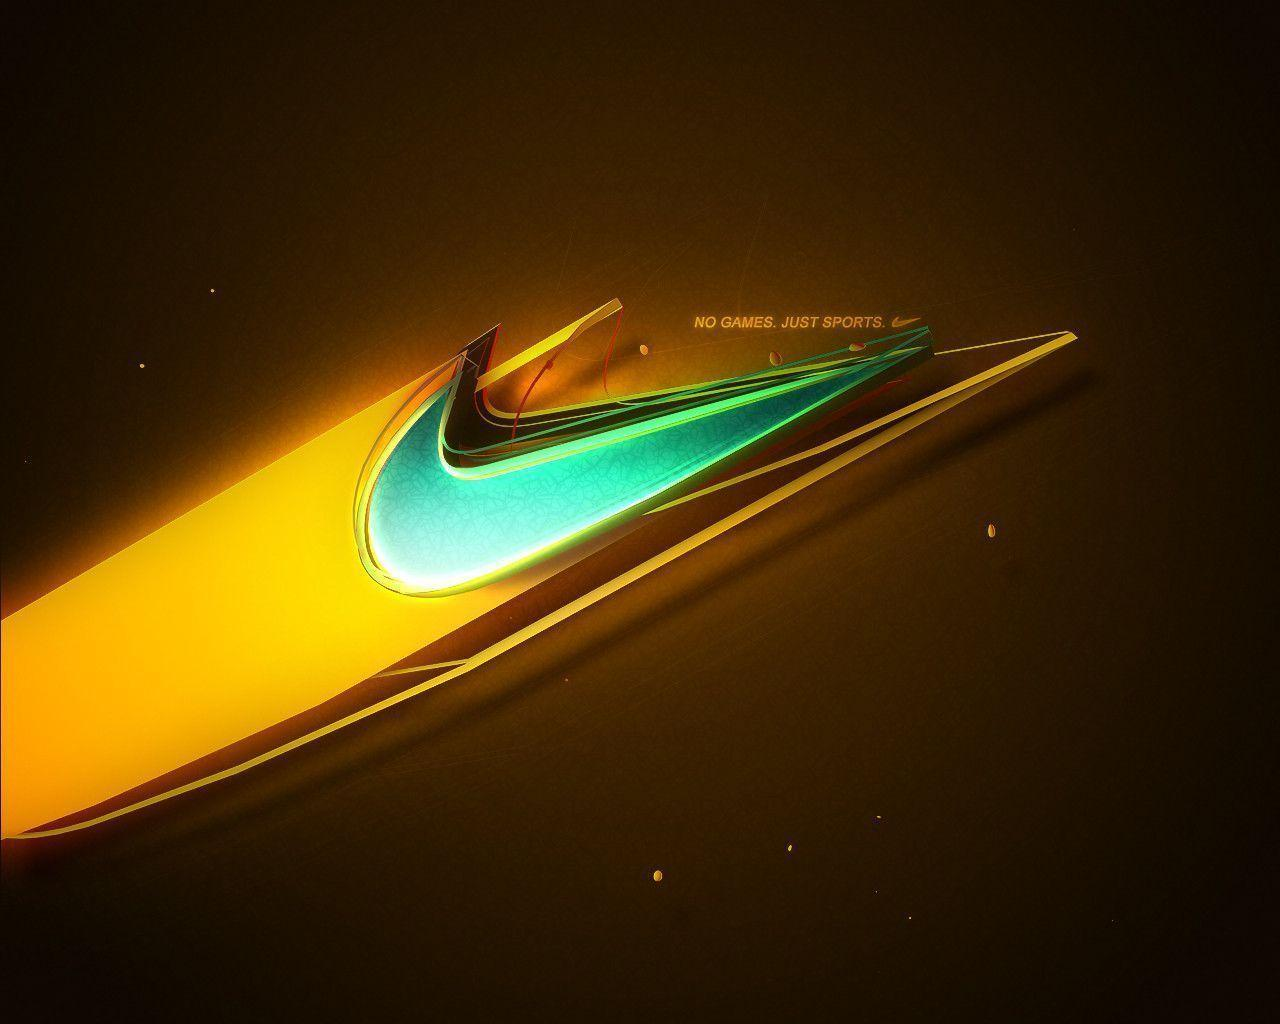 Awesome Nike Wallpapers 1280x1024